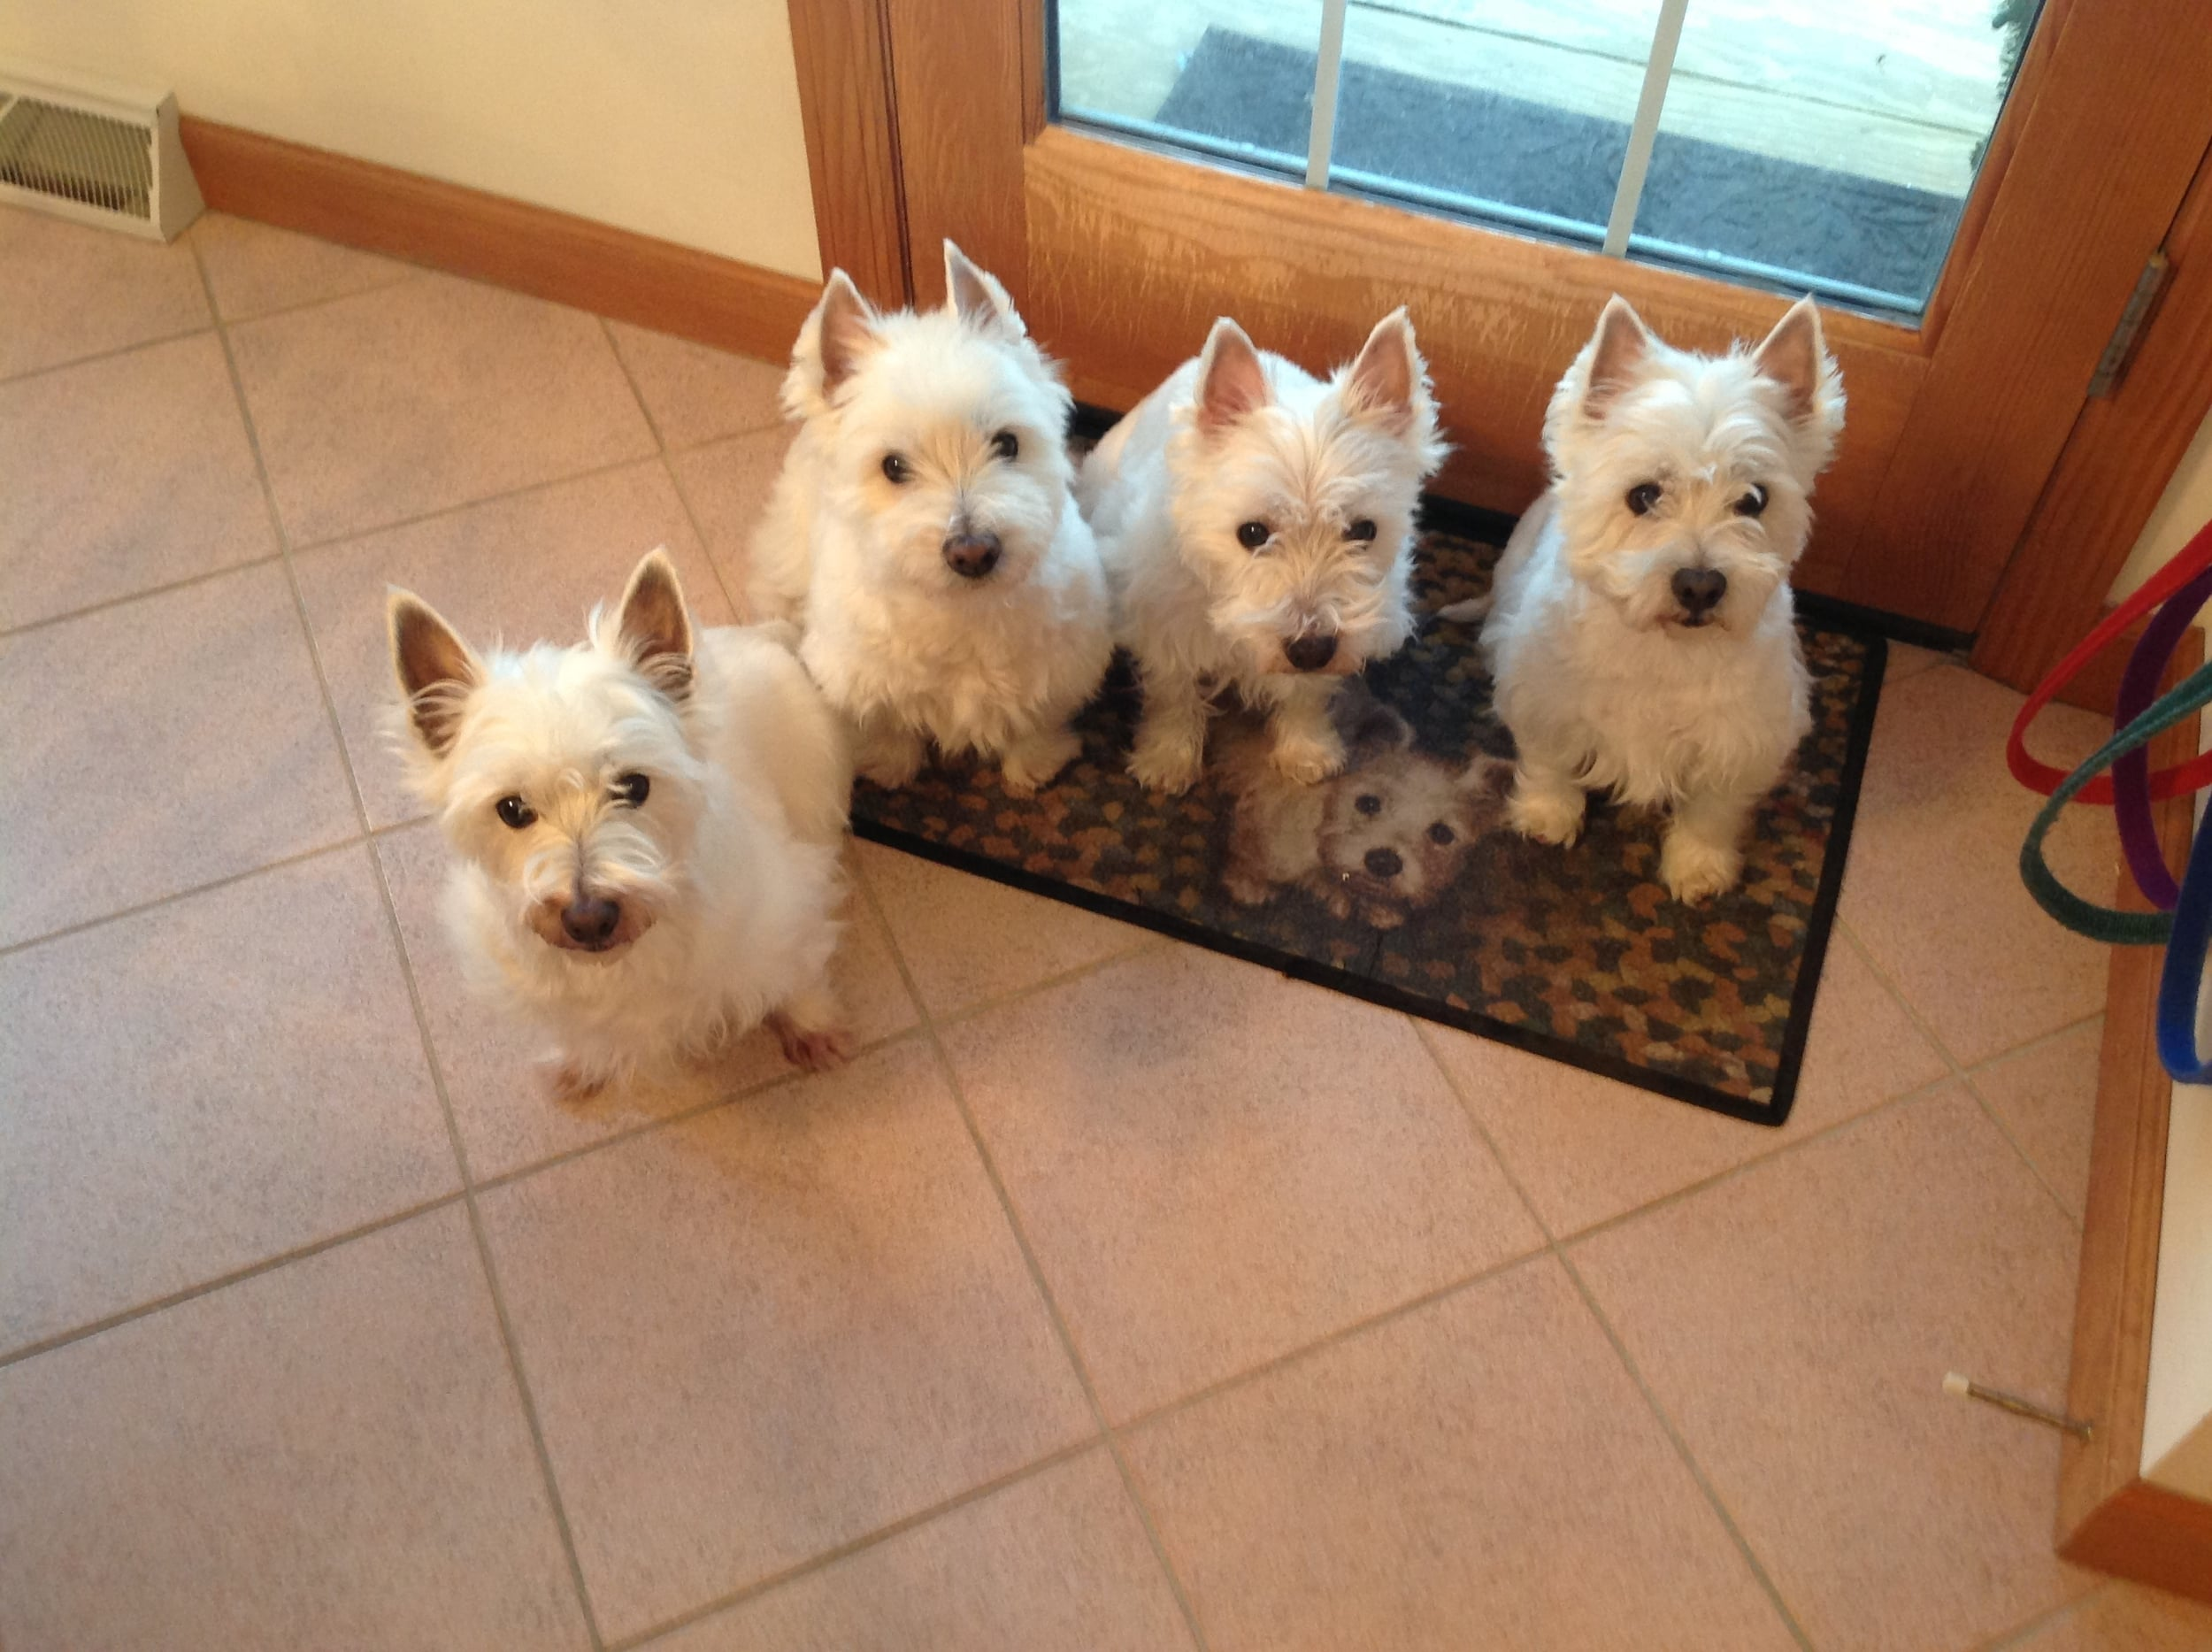 My Snowflakes - Molly B, Duffy, Rosebud and Spencer (left to right)